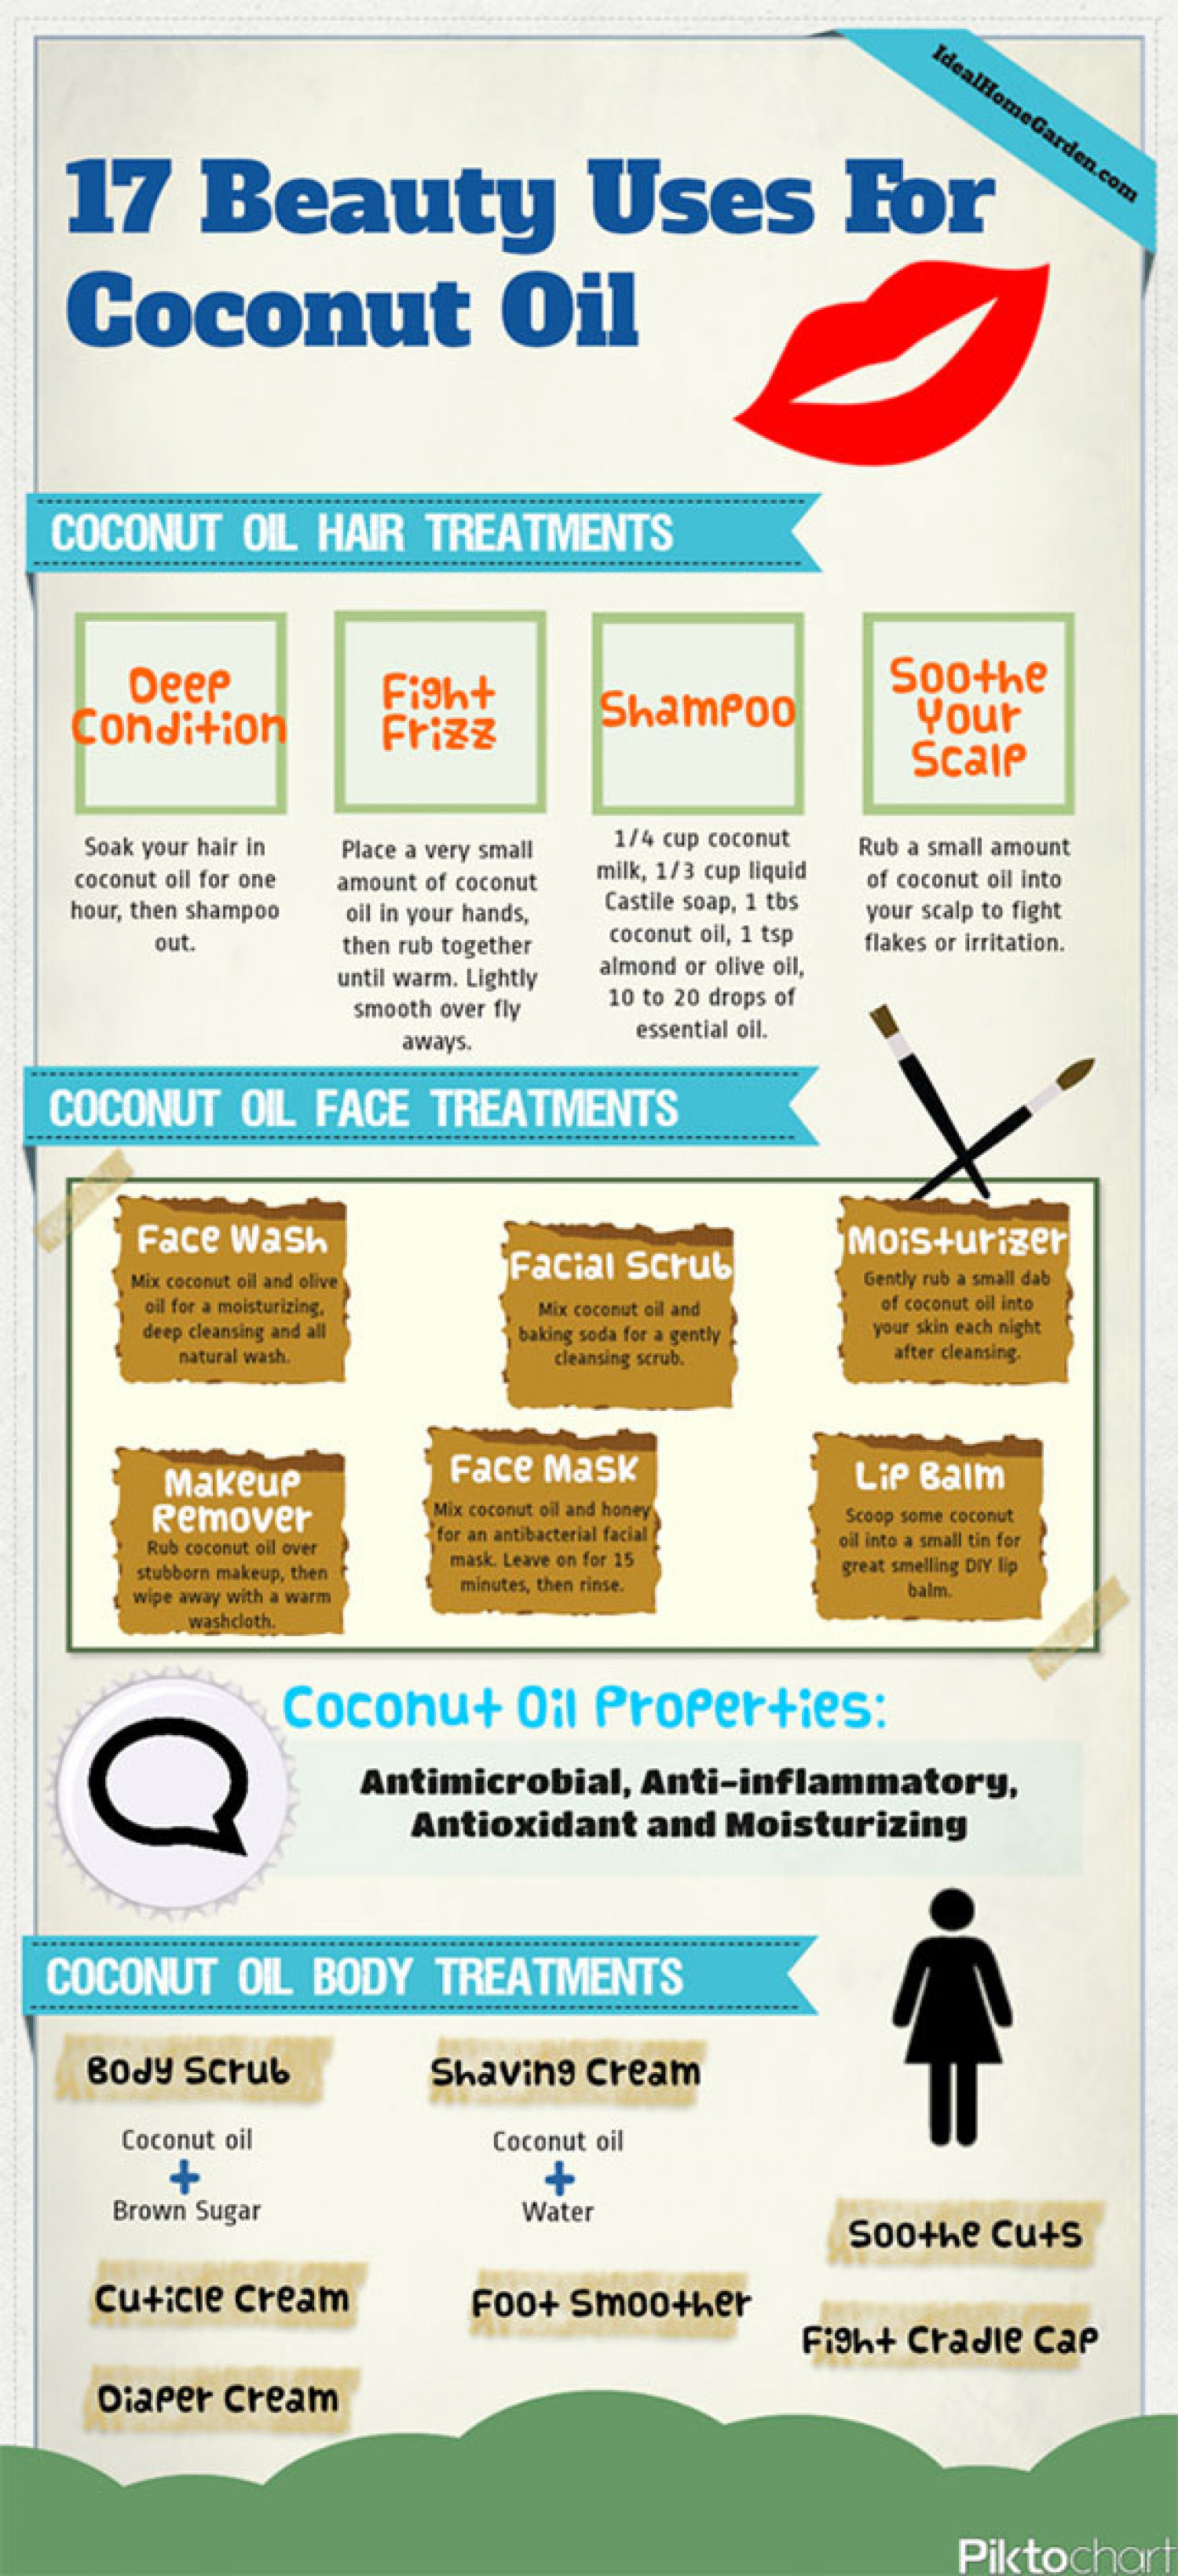 17 Beauty Uses for Coconut Oil Infographic